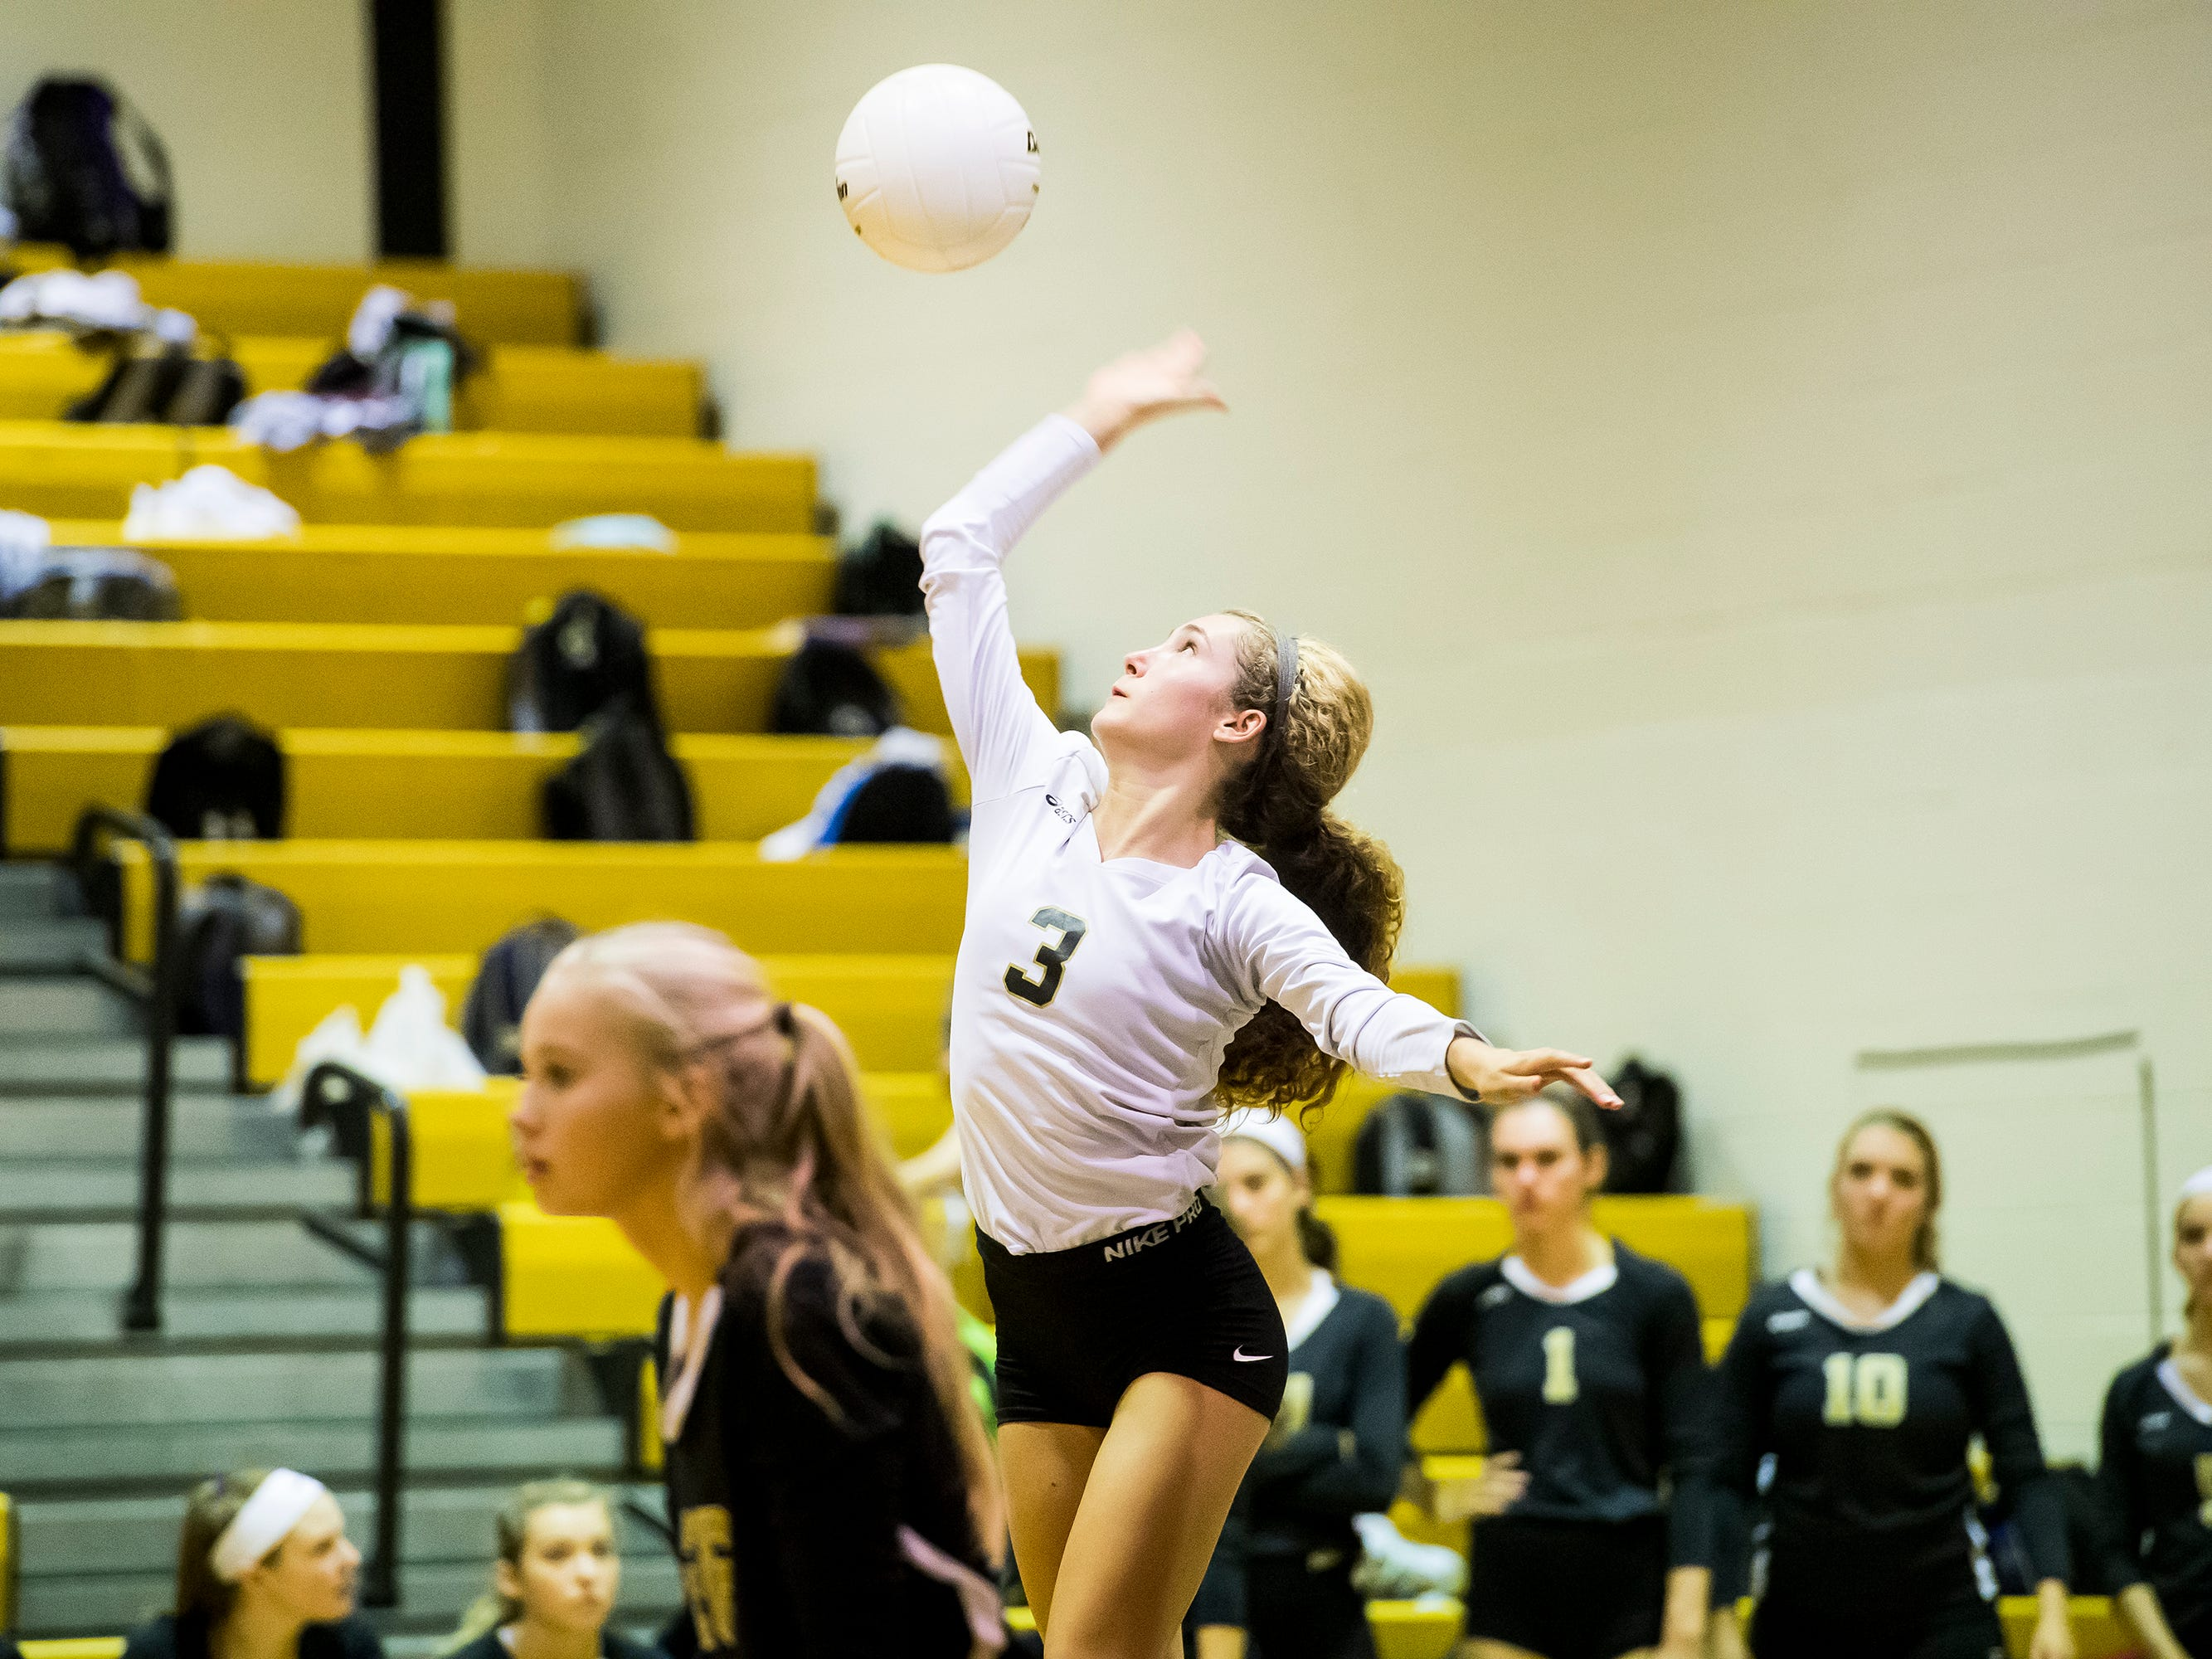 Delone Catholic's Lauren Trummer serves the ball to Hanover on Tuesday, September 18, 2018. The Squirettes swept the Hawkettes in three sets; 25-16, 25-19, 25-14.